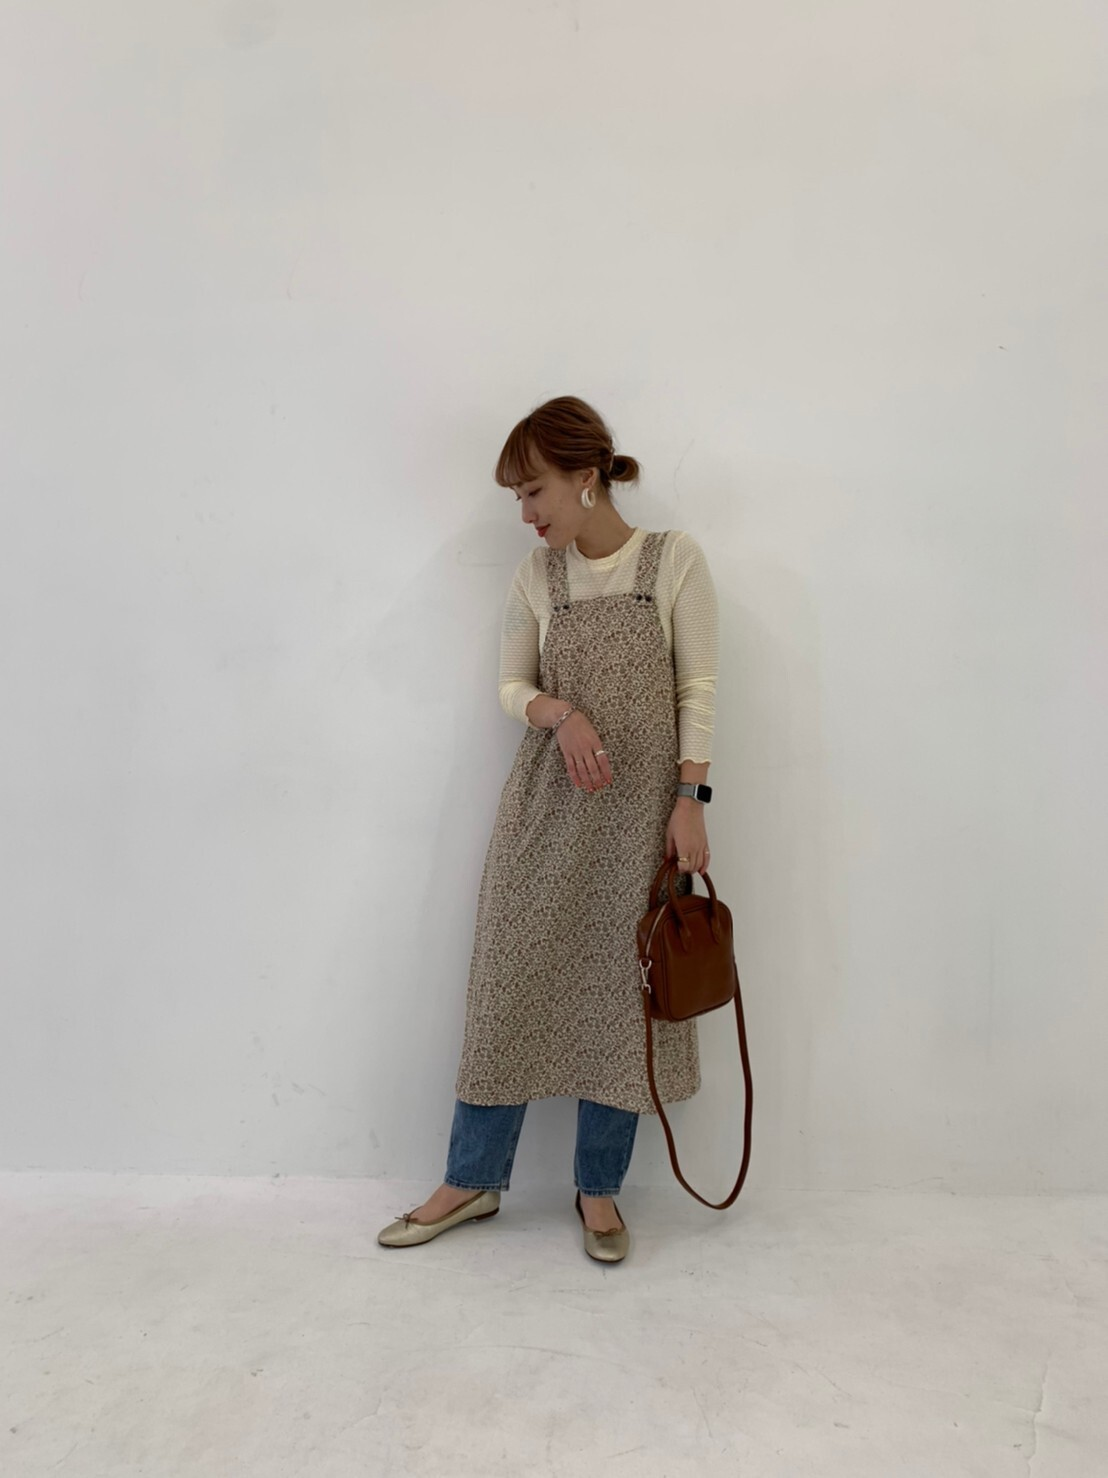 【asyu】flower salopette one-piece